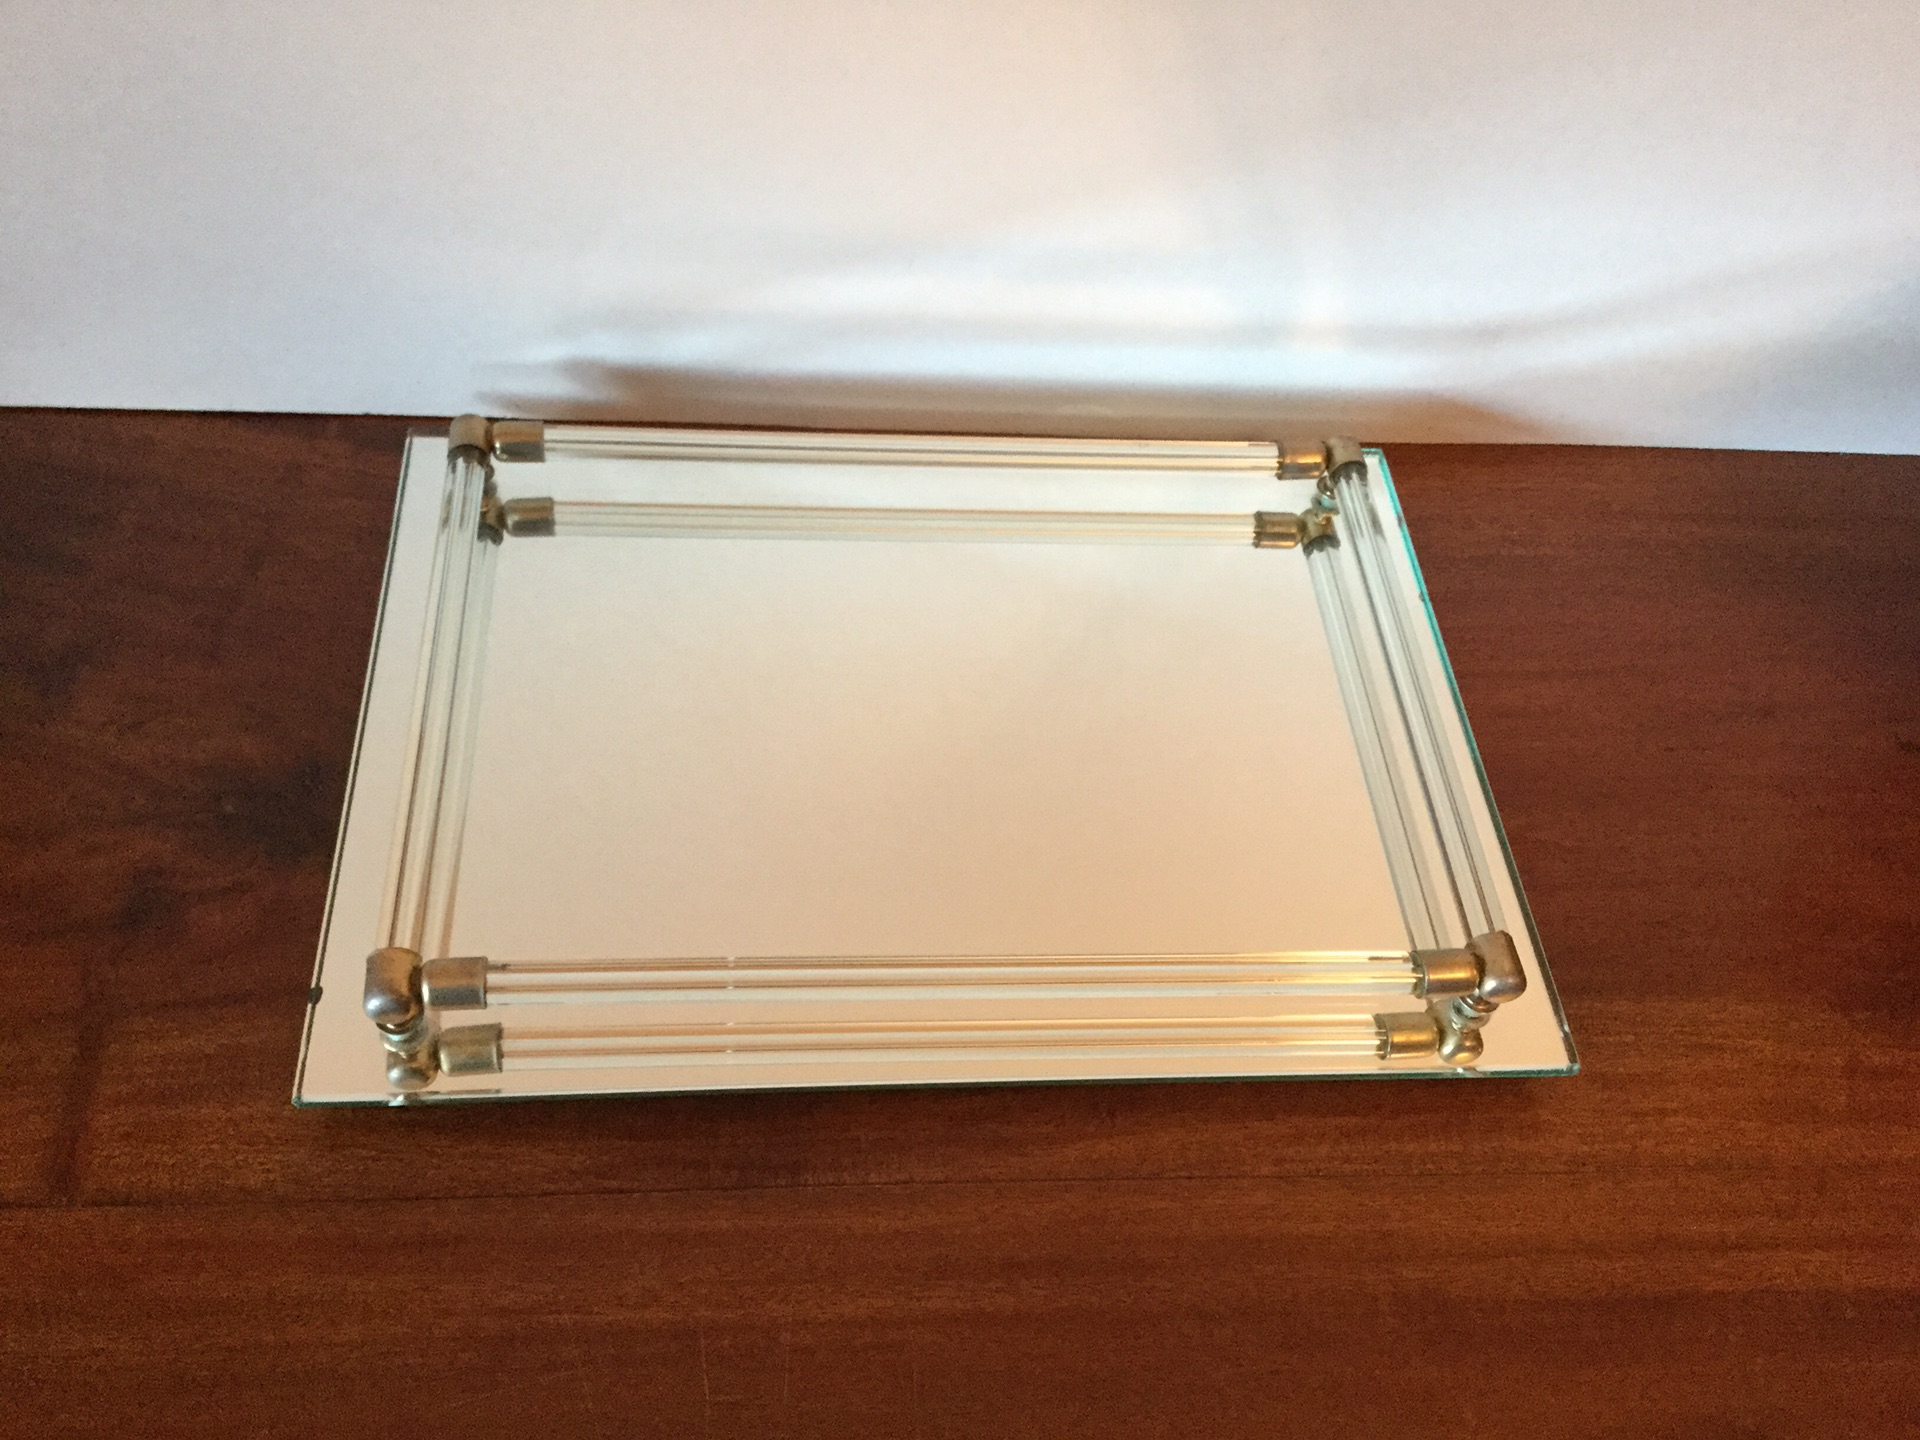 Vintage 1960s Mirrored Glass Tray With Lucite Rods Chairish